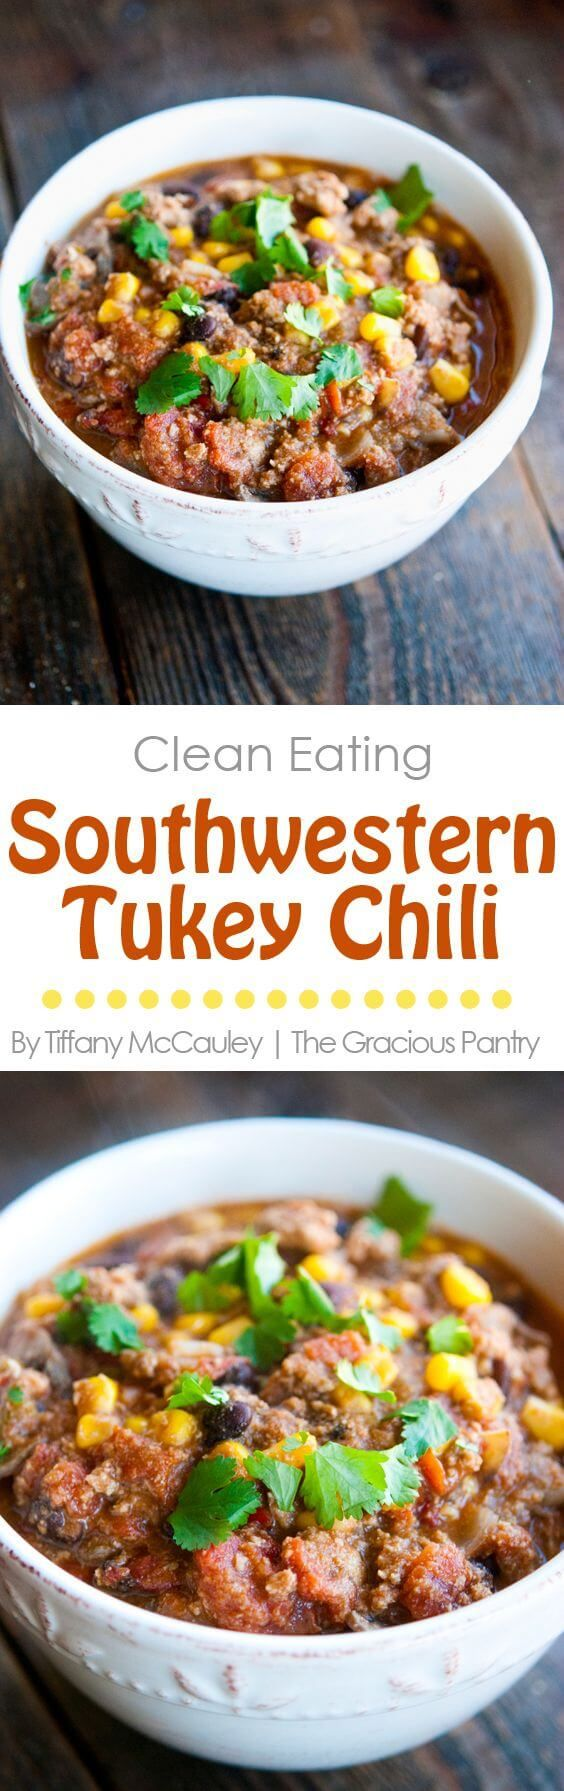 Clean Eating Southwestern Turkey Chili Recipe Clean Eating Chili Recipes